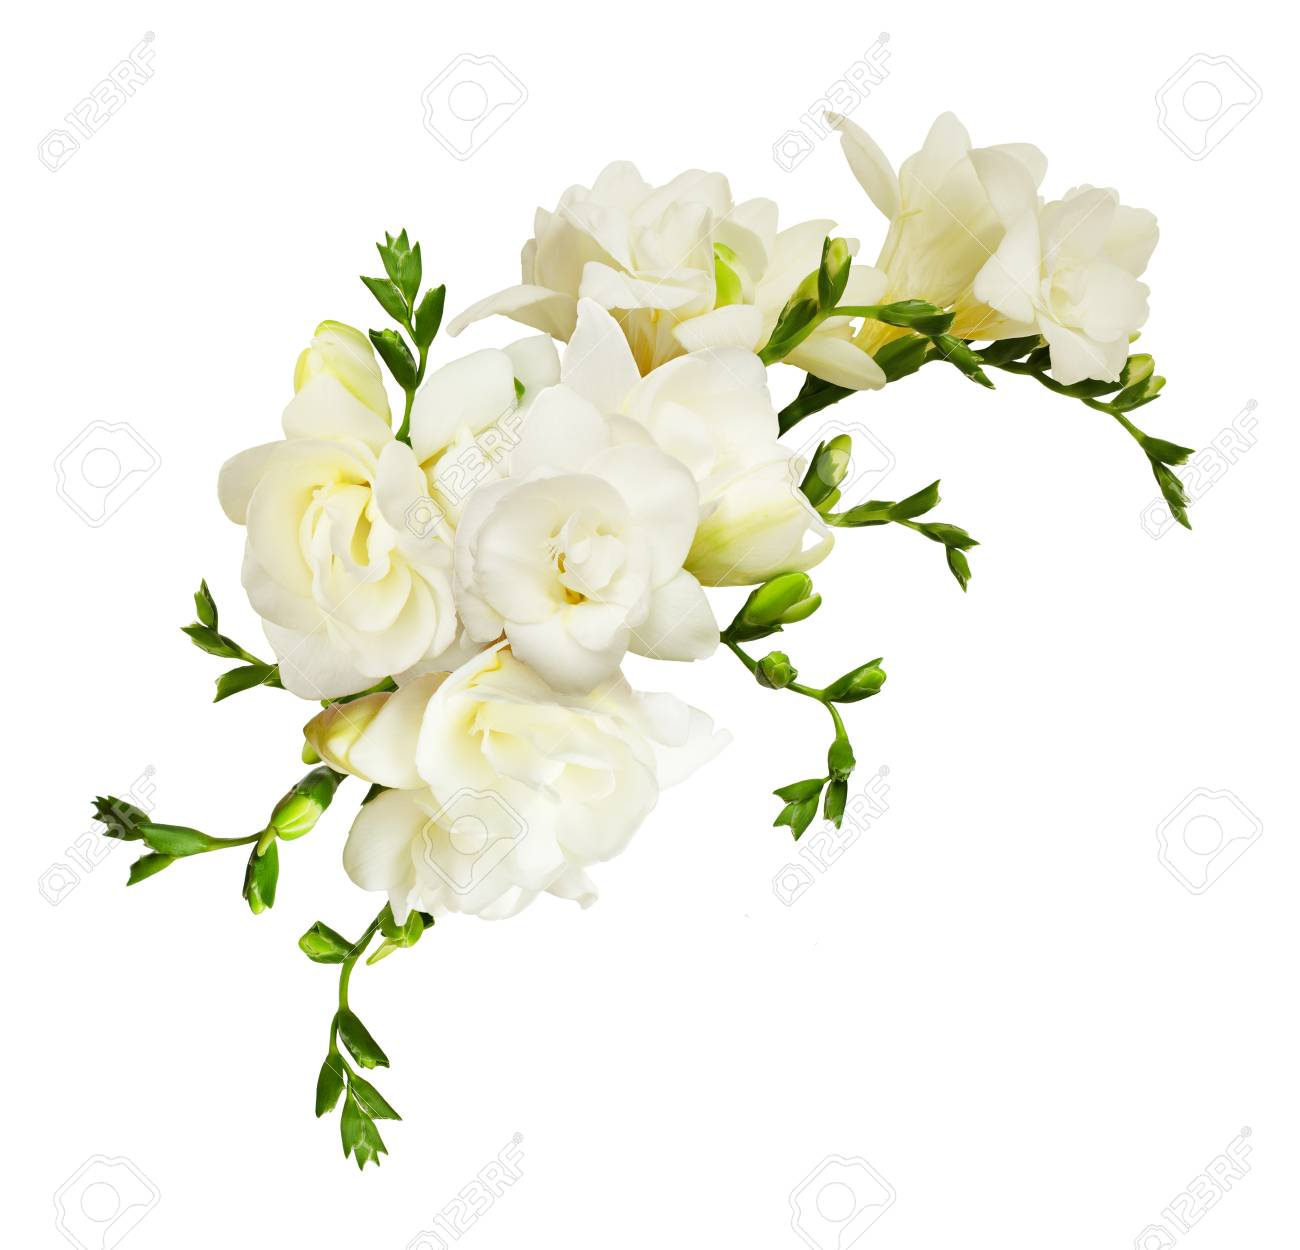 White freesia flowers in a beautiful composition isolated on white background - 96595369